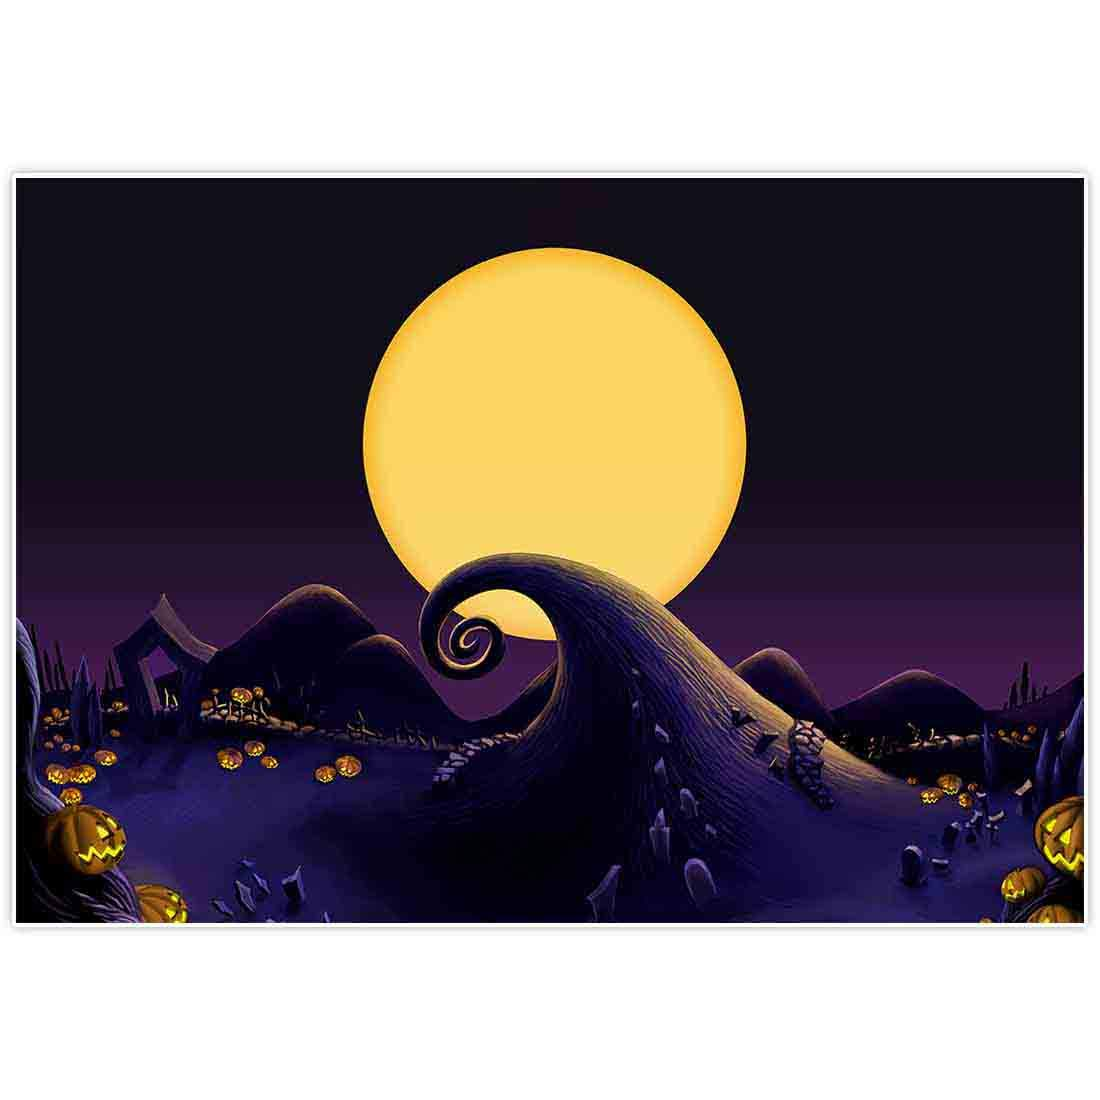 Allenjoy 7x5ft Nightmare Before Christmas Themed Backdrop for 2019 Halloween Pumpkin Jack Theme Birthday Baby Shower Photo Studio Photography Pictures Background Party Home Decor Decoration Shoot by Allenjoy